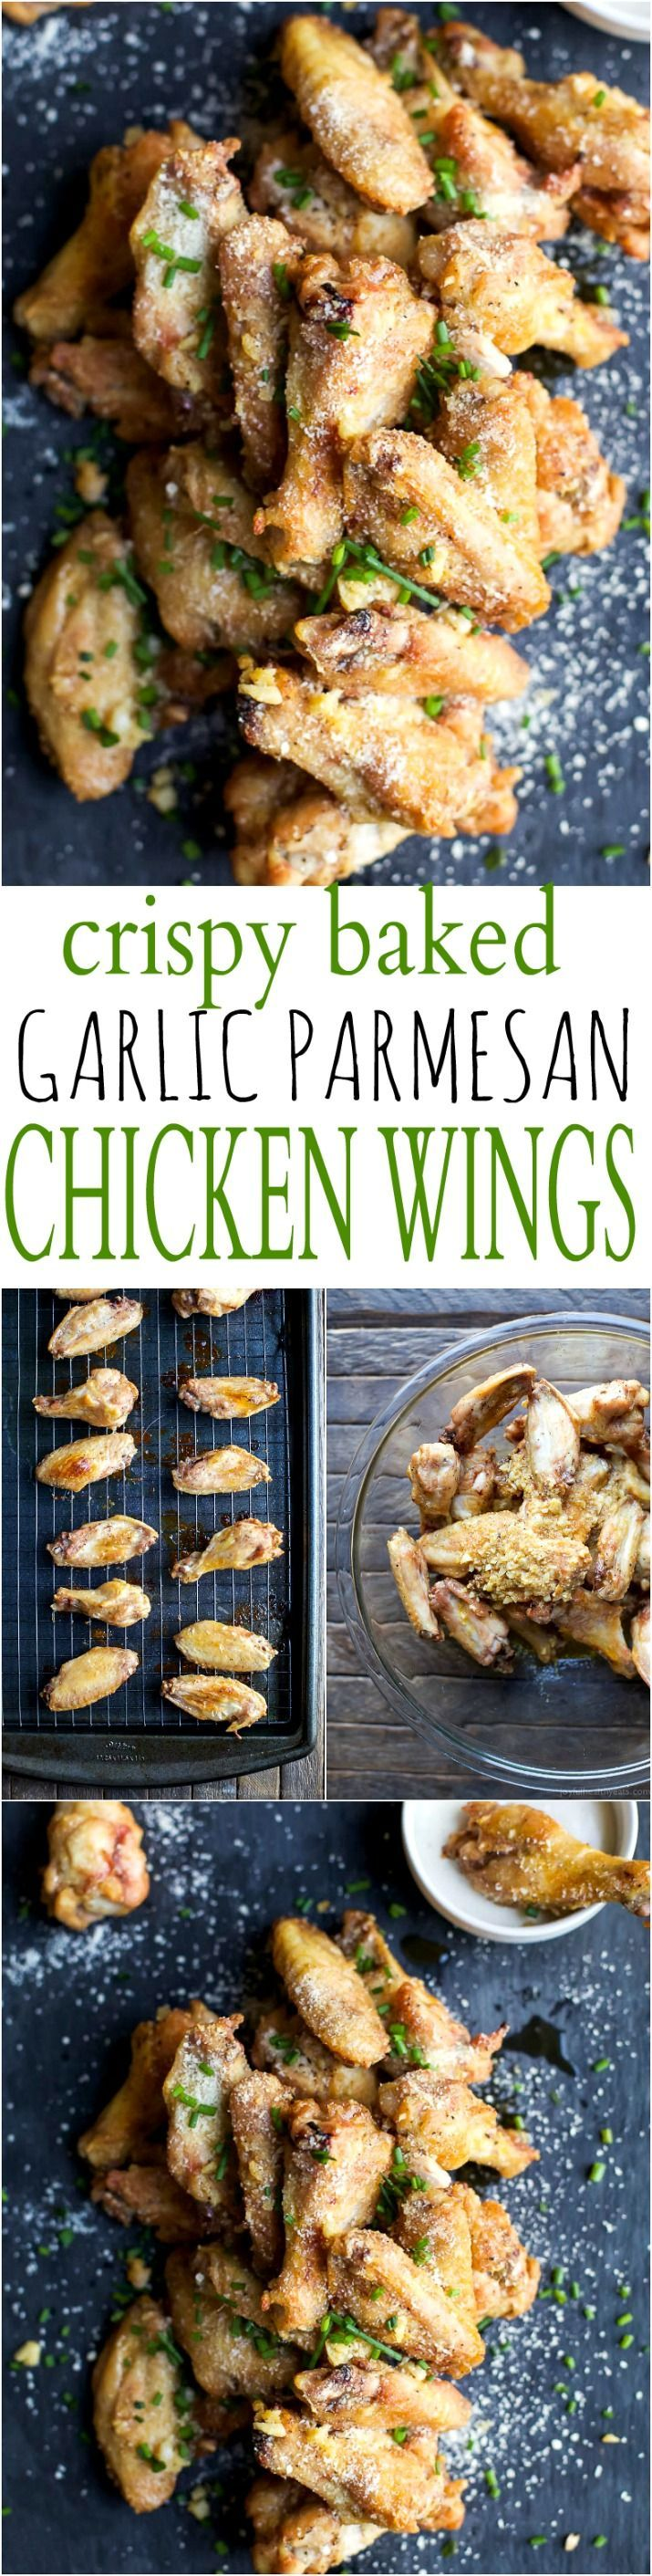 CRISPY GARLIC PARMESAN CHICKEN WINGS - baked instead of fried but these classic chicken wings are still as crispy and delicious as ever! The perfect party appetizer or game day treat! | joyfulhealthyeats... | Gluten Free Recipes